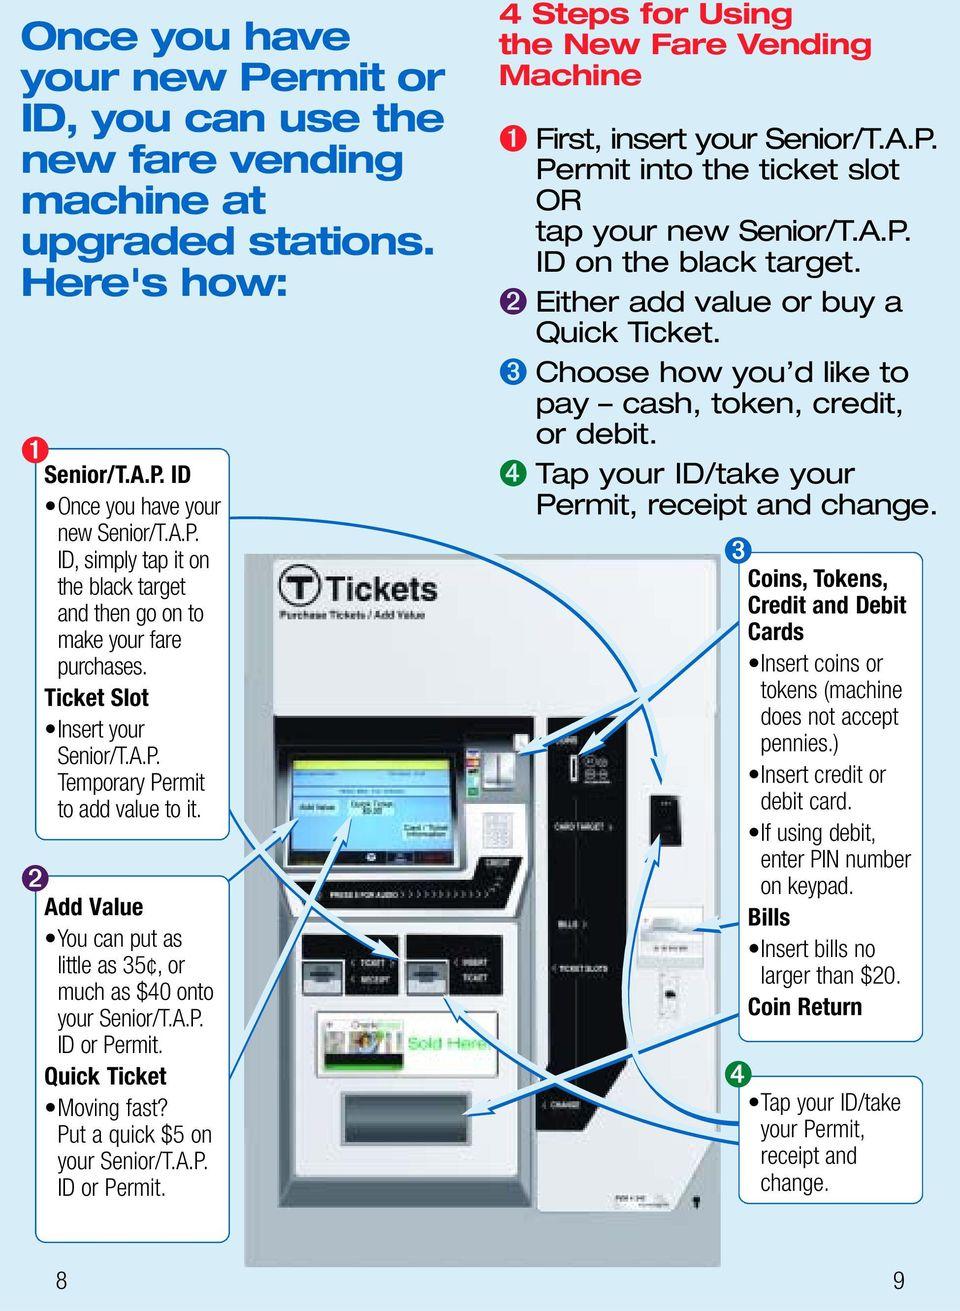 Put a quick $5 on your Senior/T.A.P. ID or Permit. 4 Steps for Using the New Fare Vending Machine ➊ First, insert your Senior/T.A.P. Permit into the ticket slot tap your new Senior/T.A.P. ID on the black target.